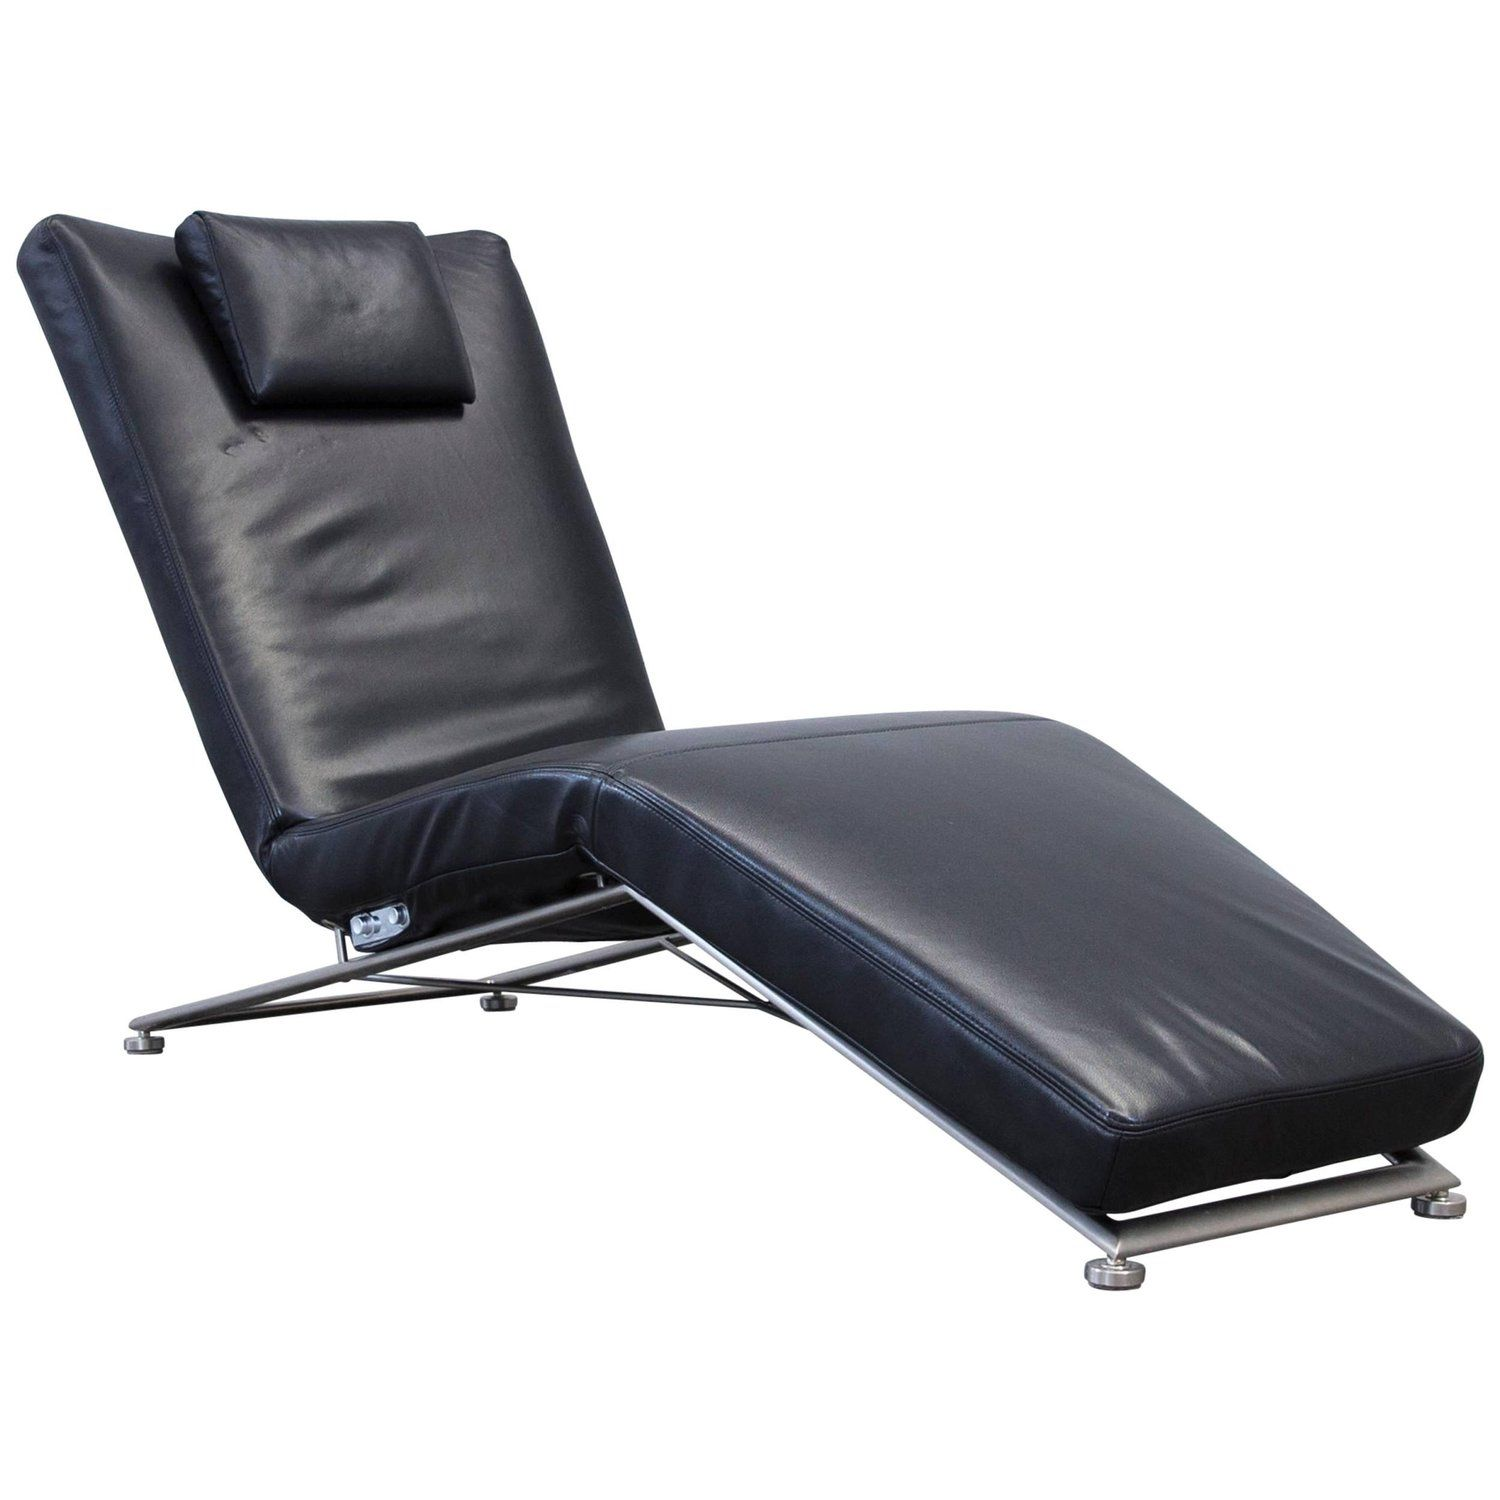 Koinor Designer Chaise Longue Leather Black Recamiere Chair Function Modern